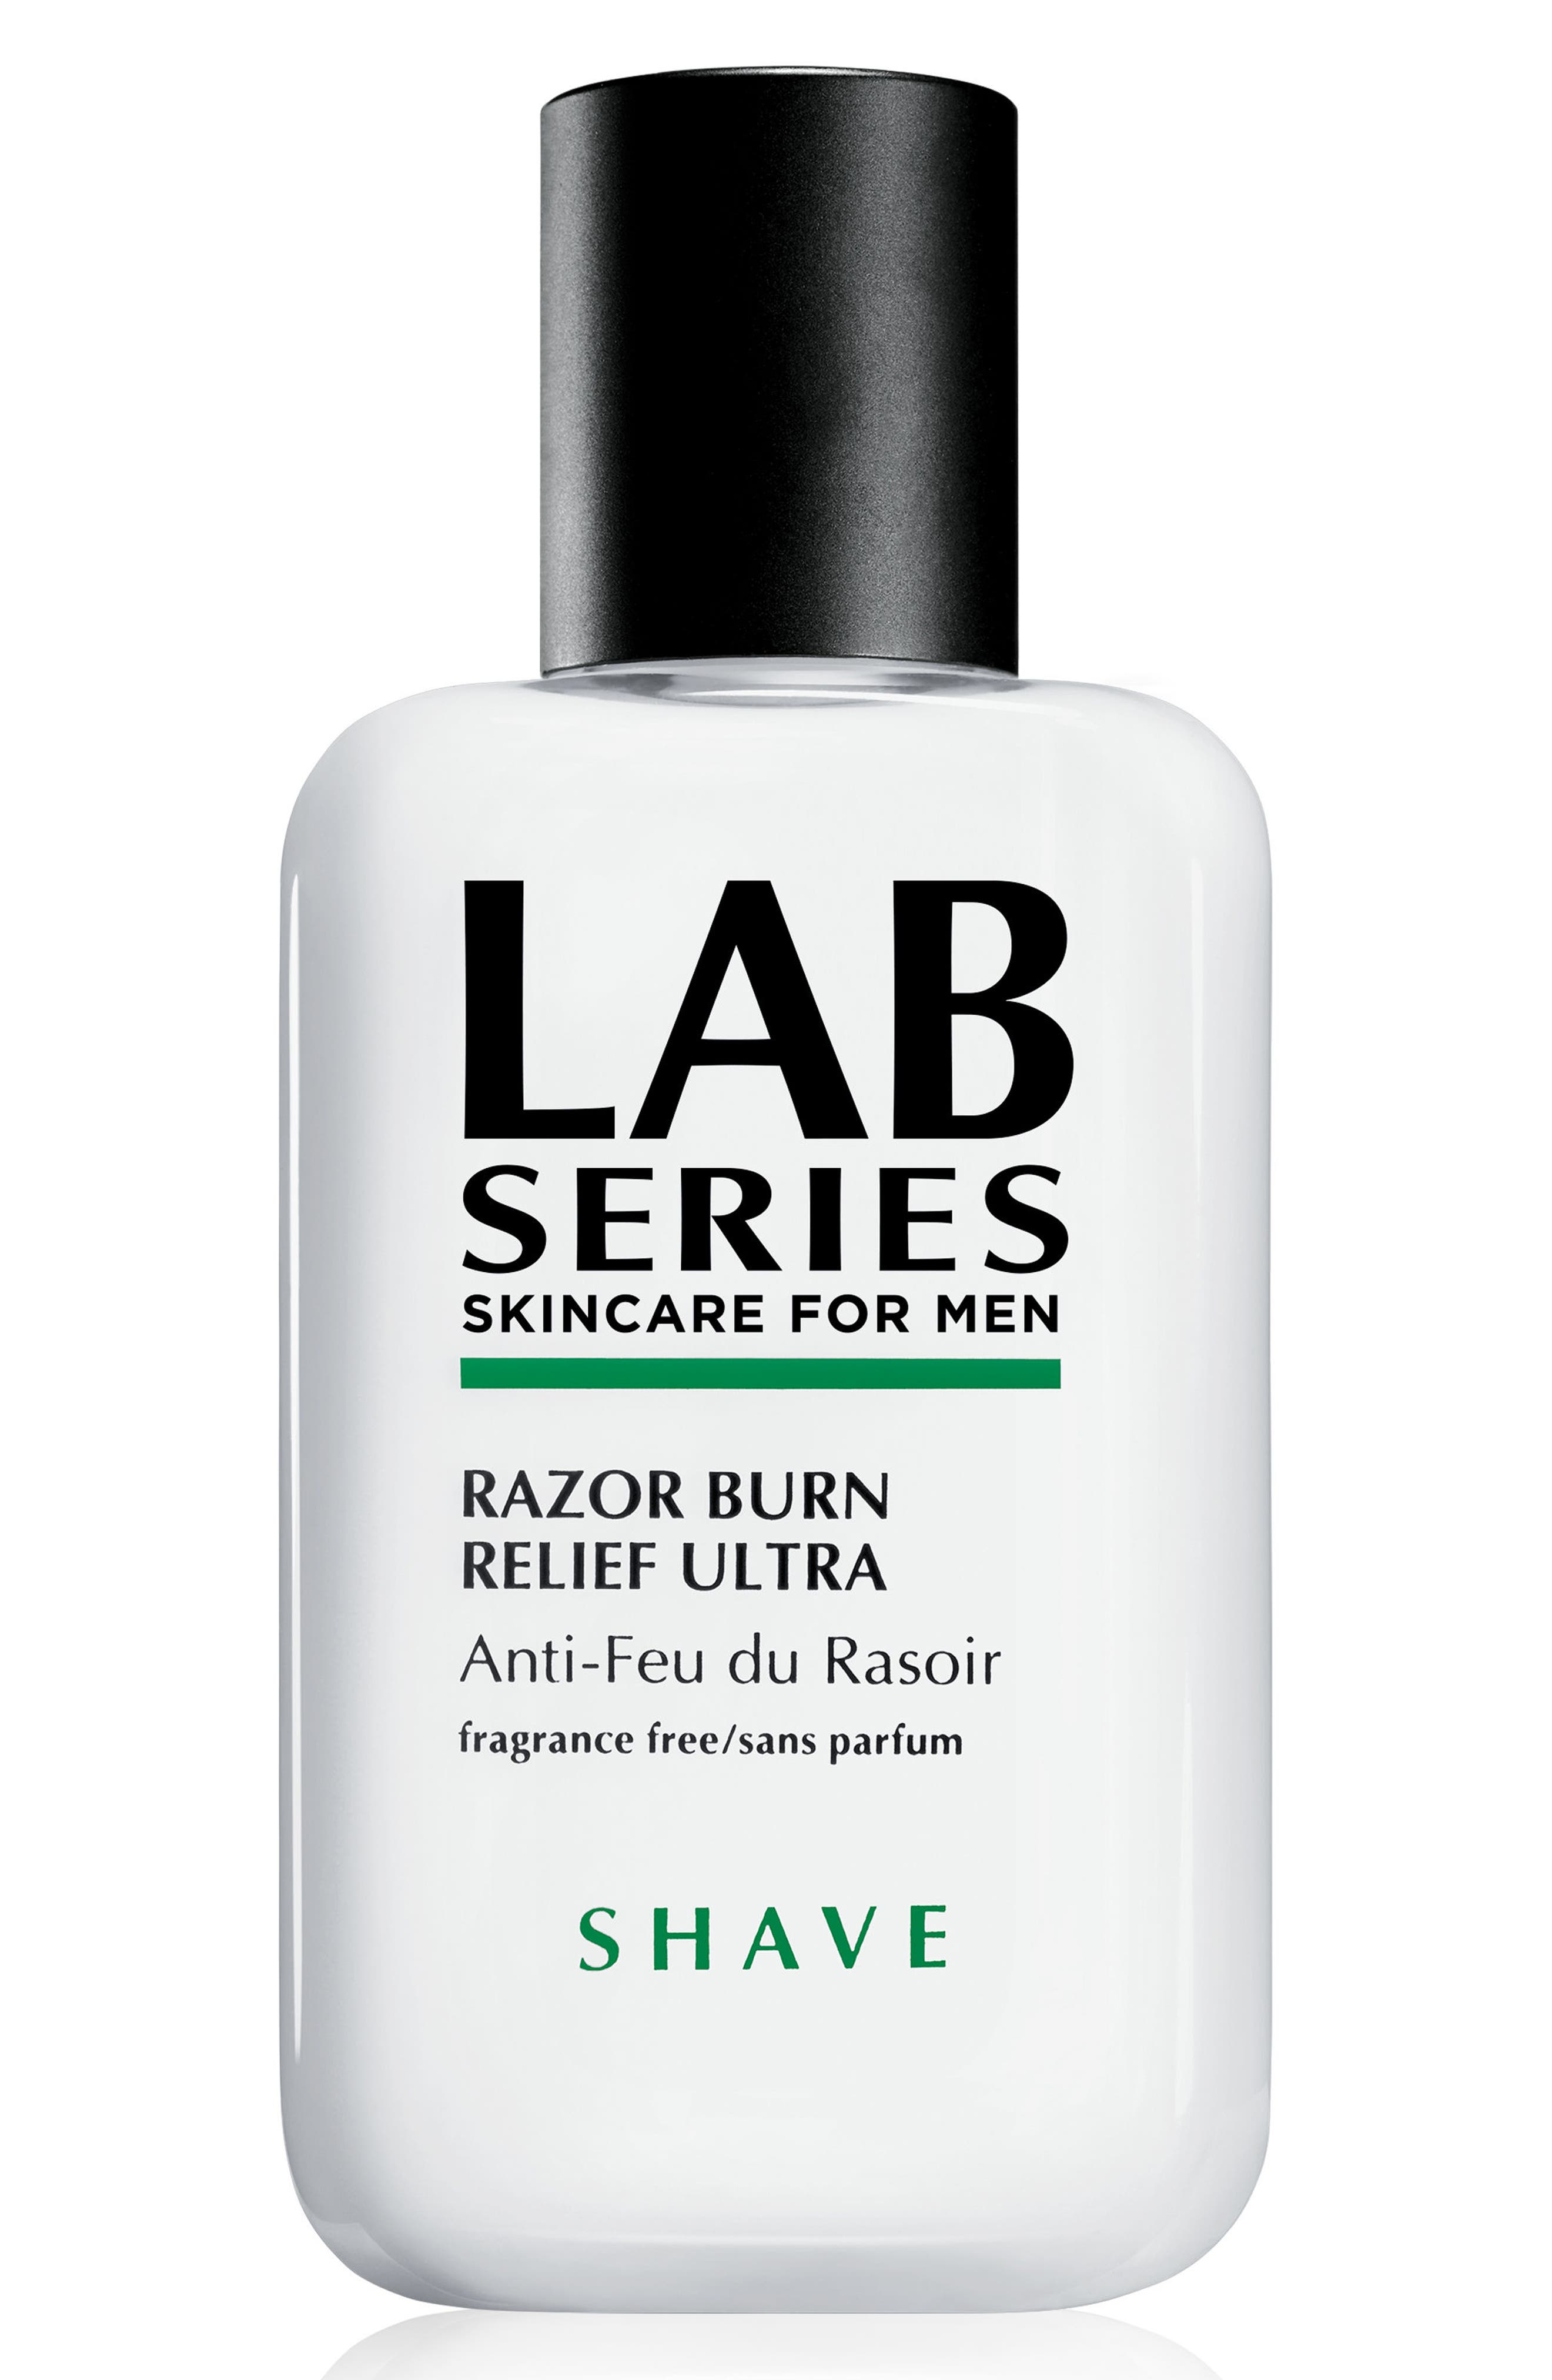 This lightweight soothing lotion by Lab Series Skincare for Men delivers fast relief from razor burn, irritation and redness. It immediately distributes moisture to affected areas, calming the skin and re-building the moisture barrier damaged by shaving. How to use: Use after you shave by applying a small amount with your fingertips in circular motions around shaved areas. Style Name: Lab Series Skincare For Men Razor Burn Relief Ultra. Style